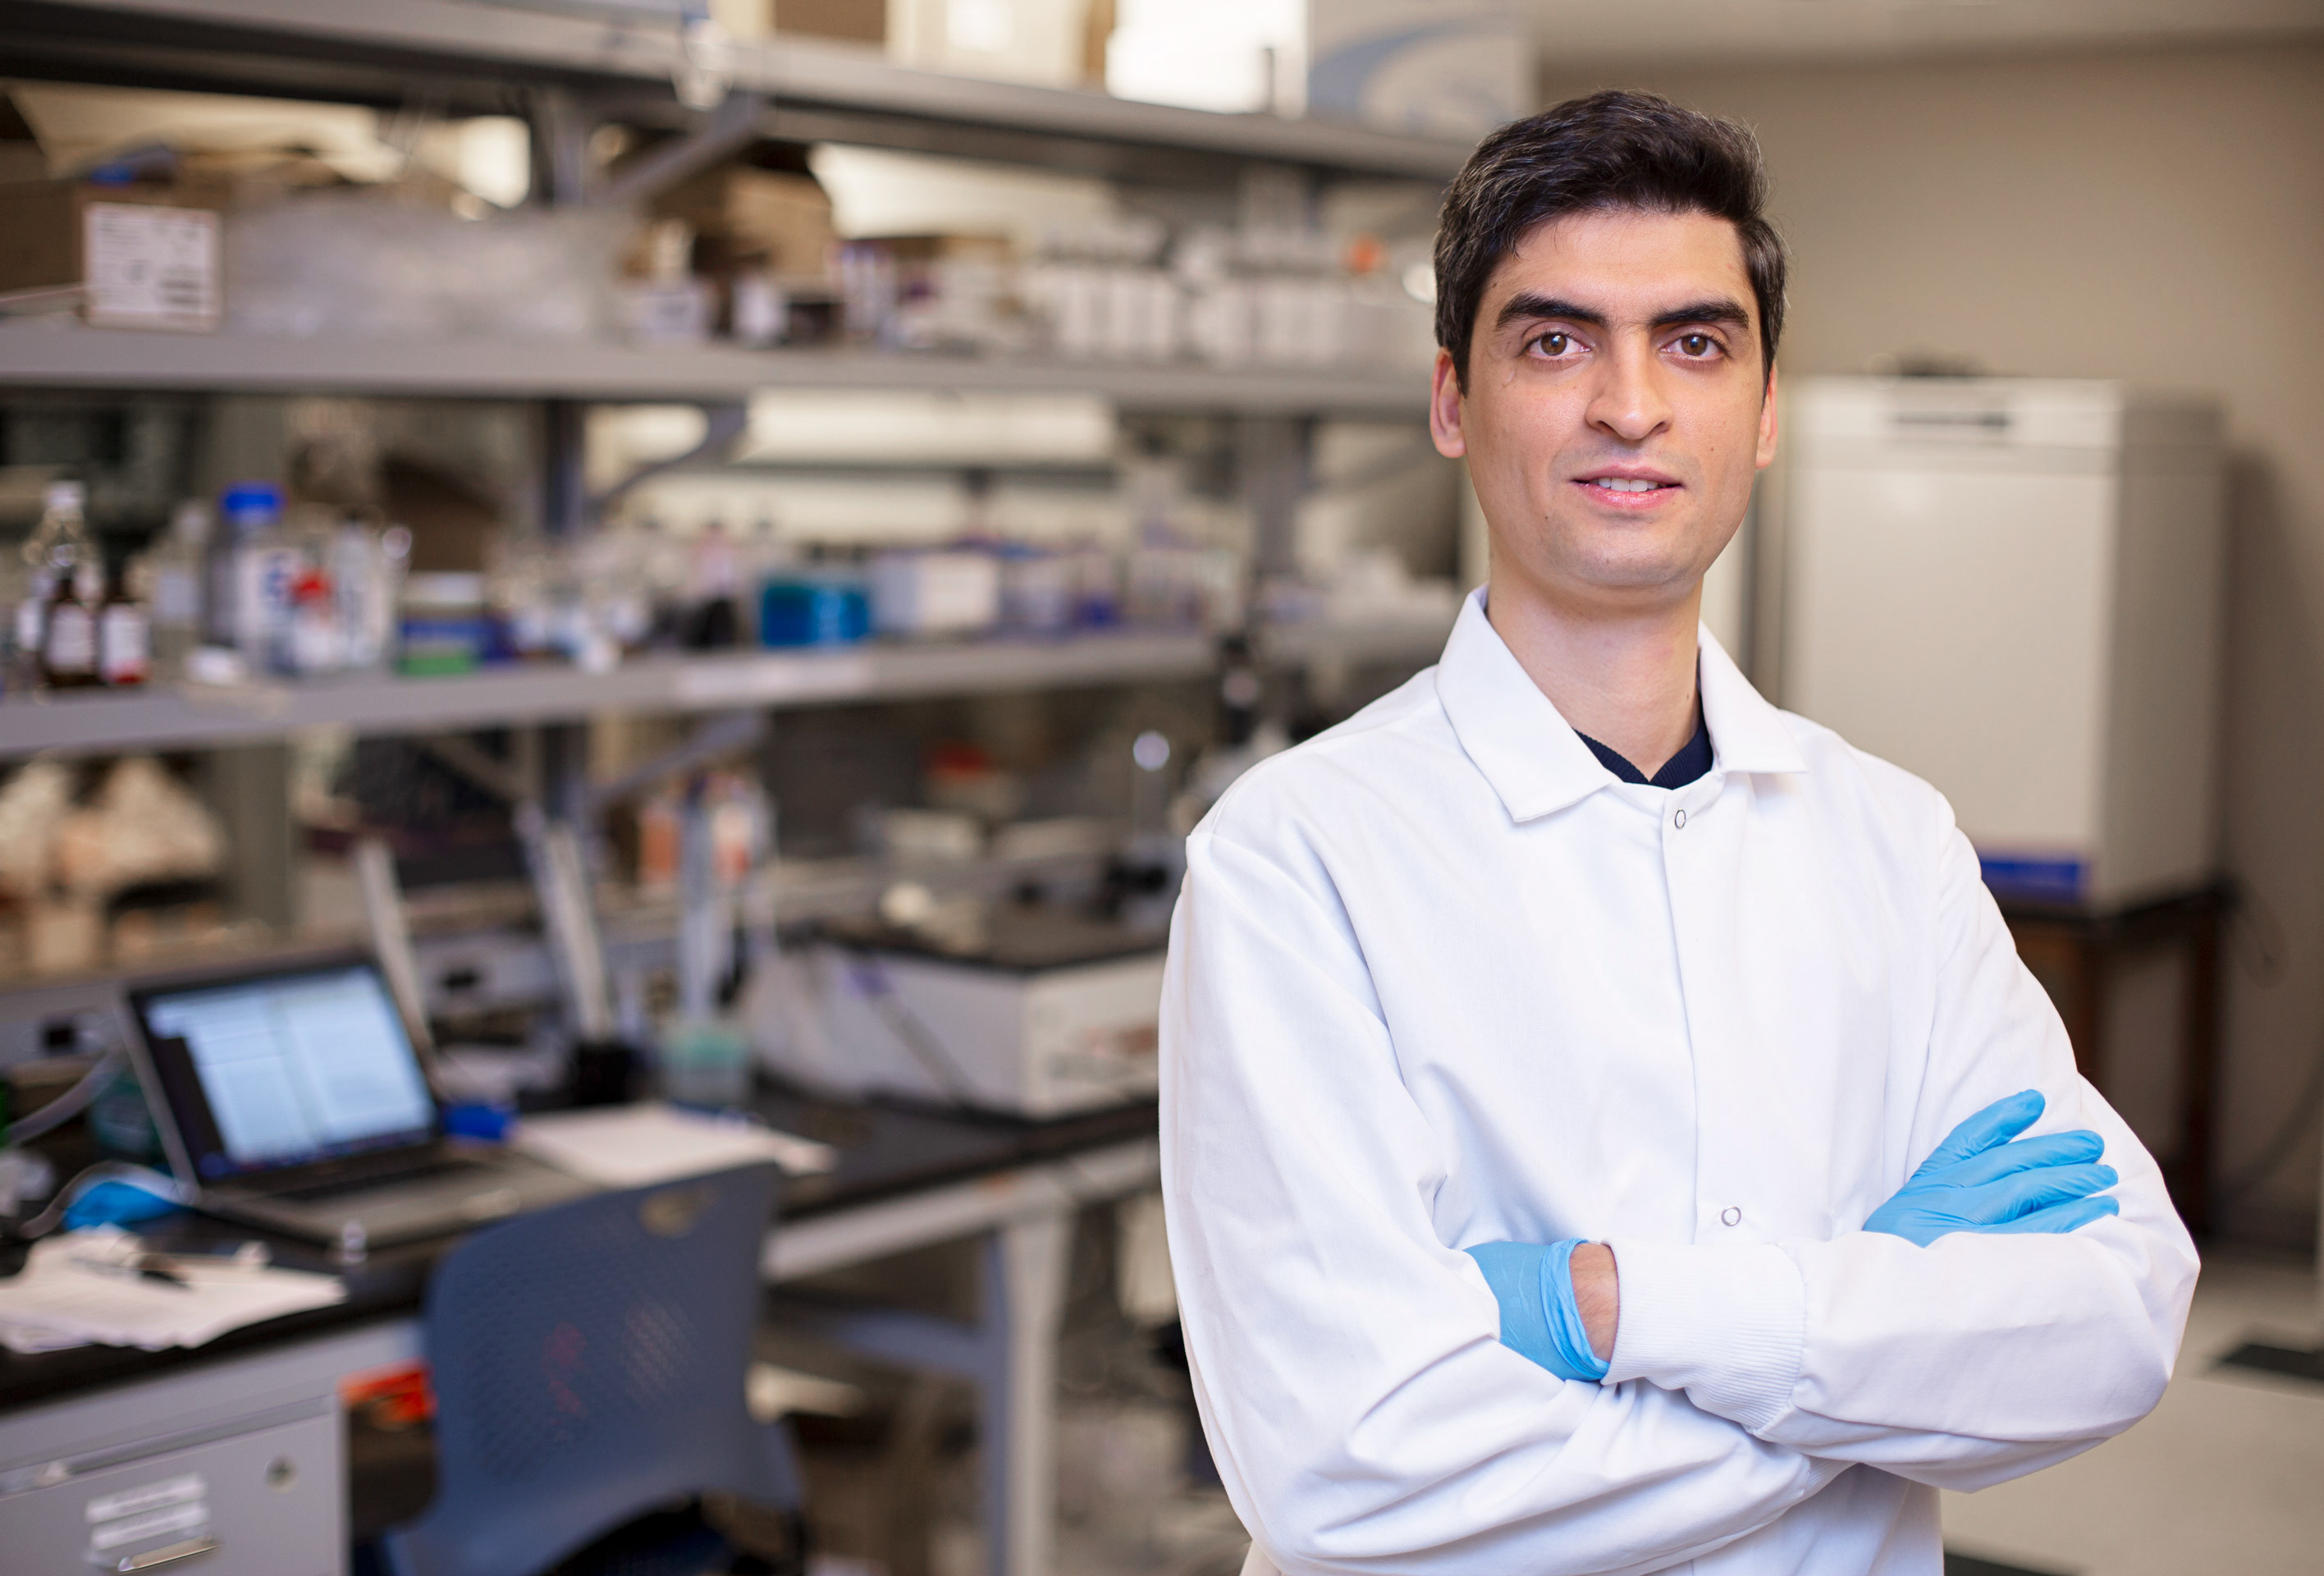 Farhad Farjood, one of the lead researchers on the retinal cells study